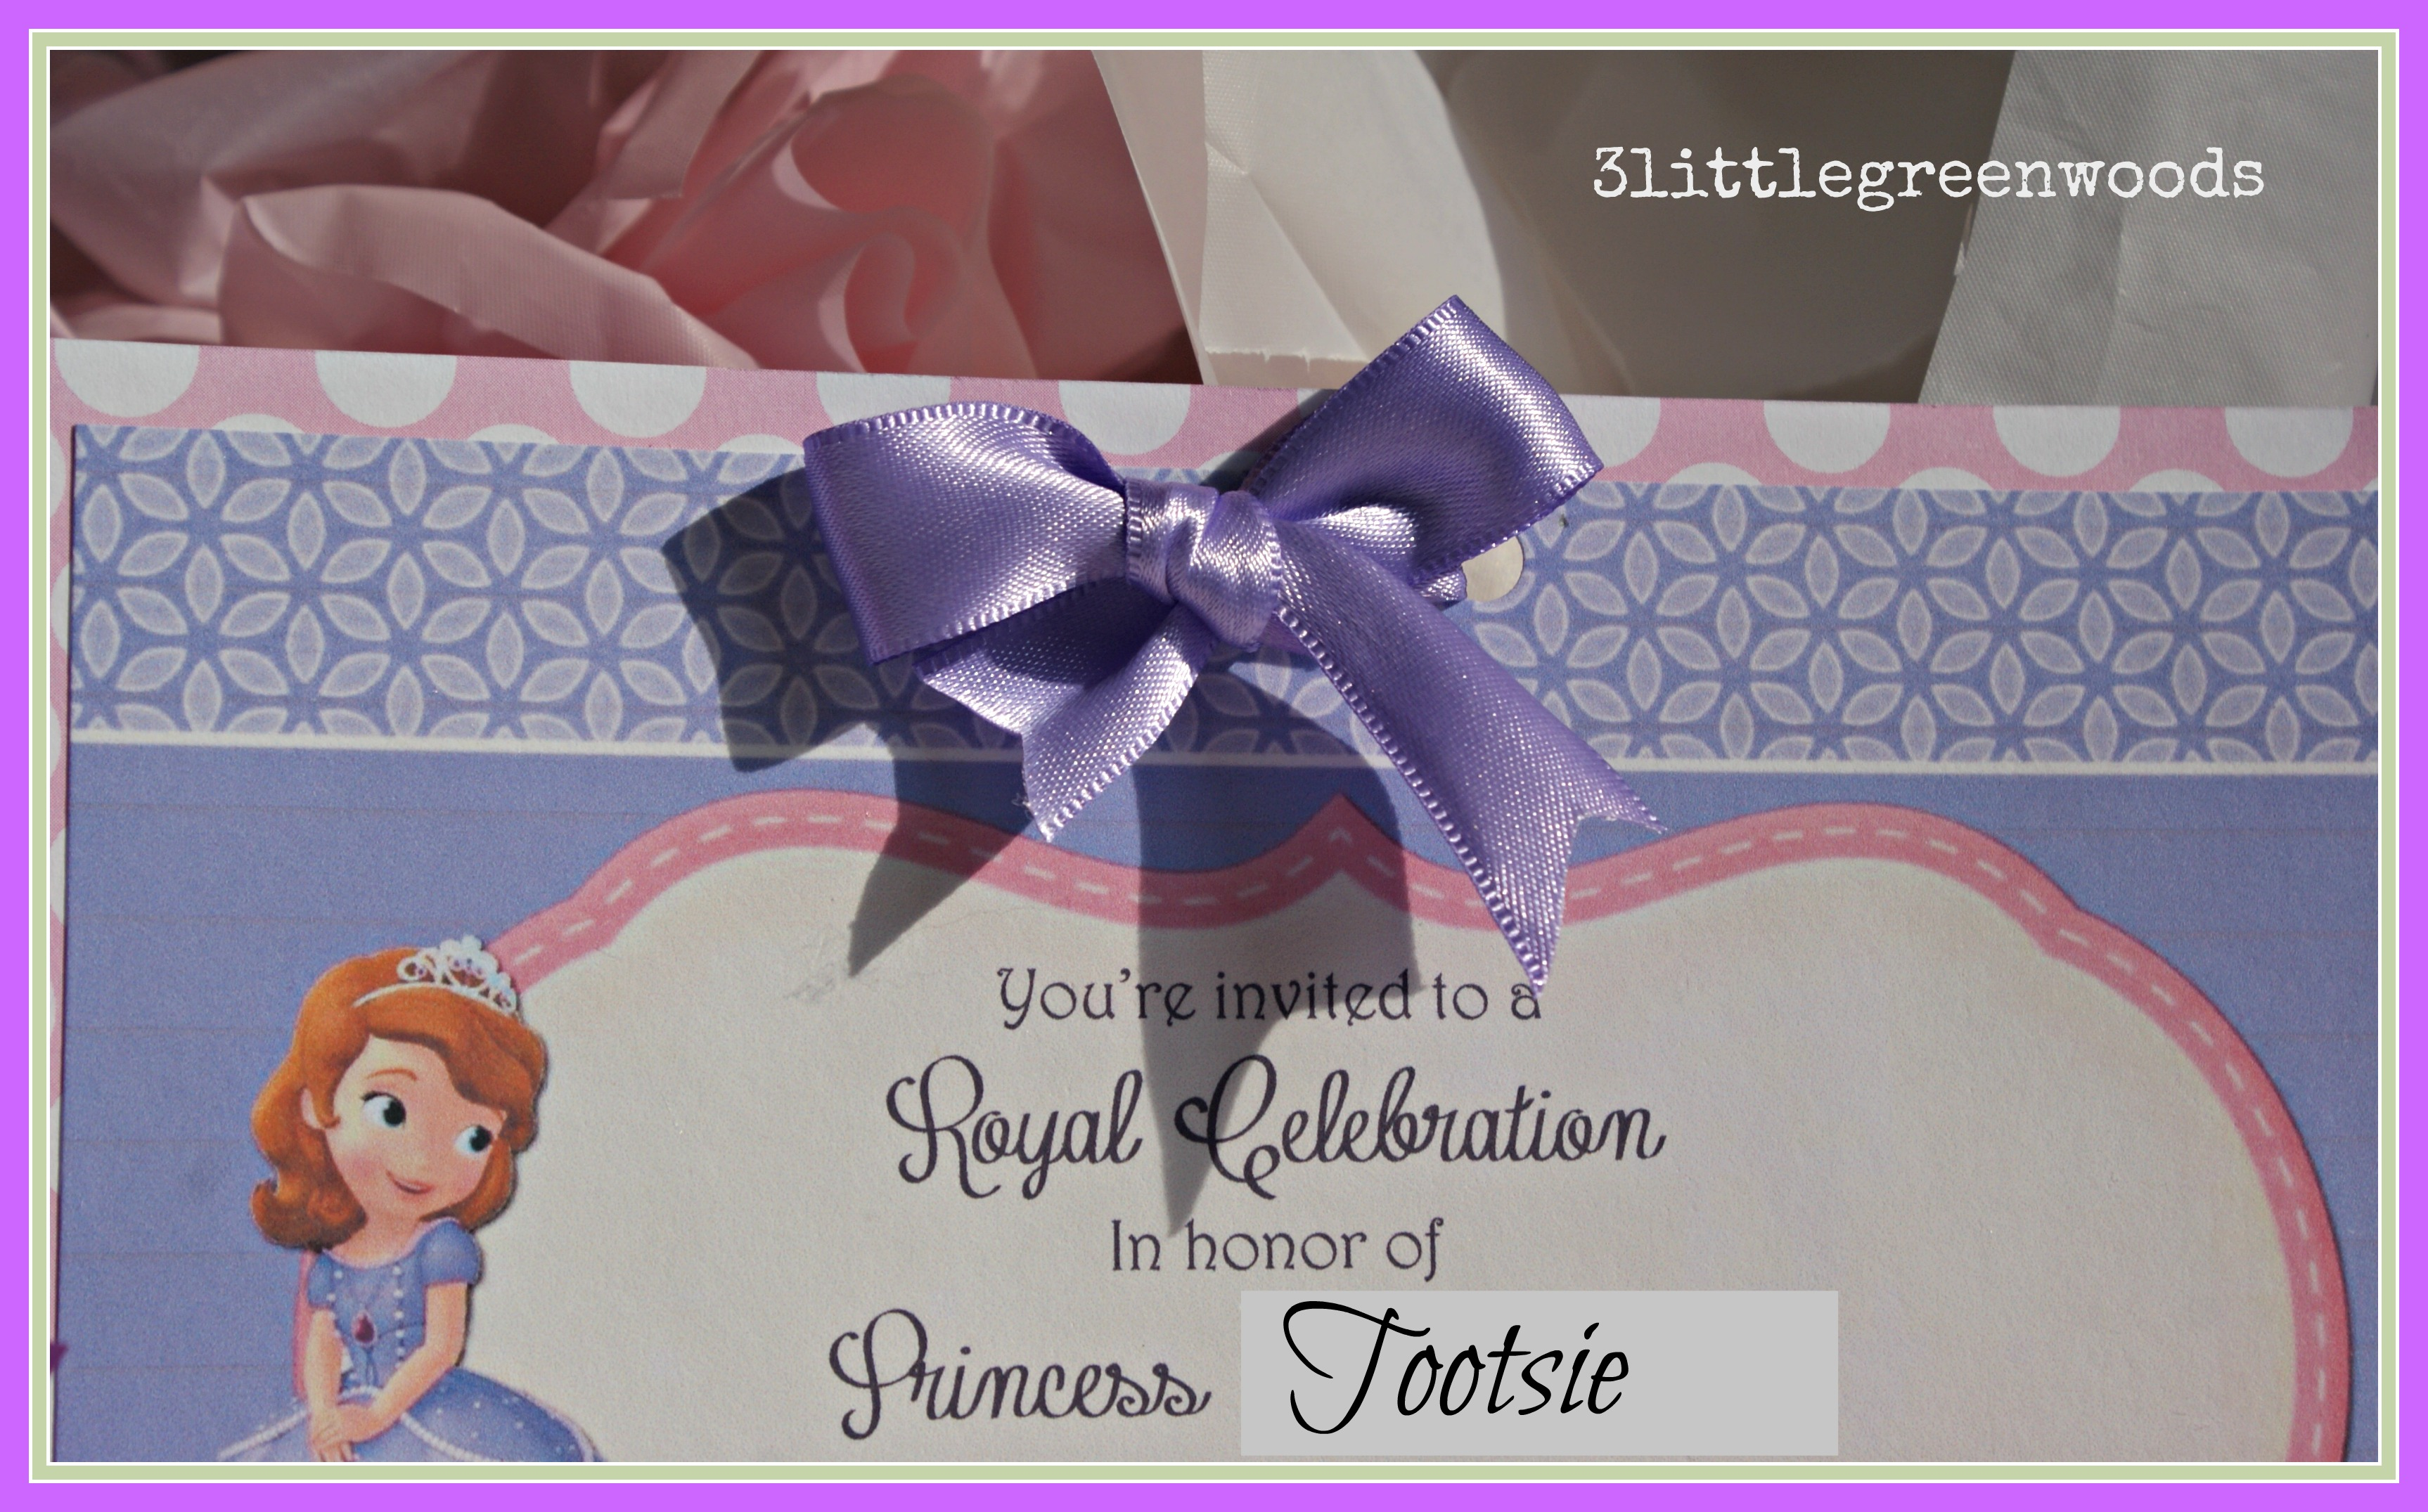 Sofia The First Party Invitations Princess On A Budget 3littlegreenwoods